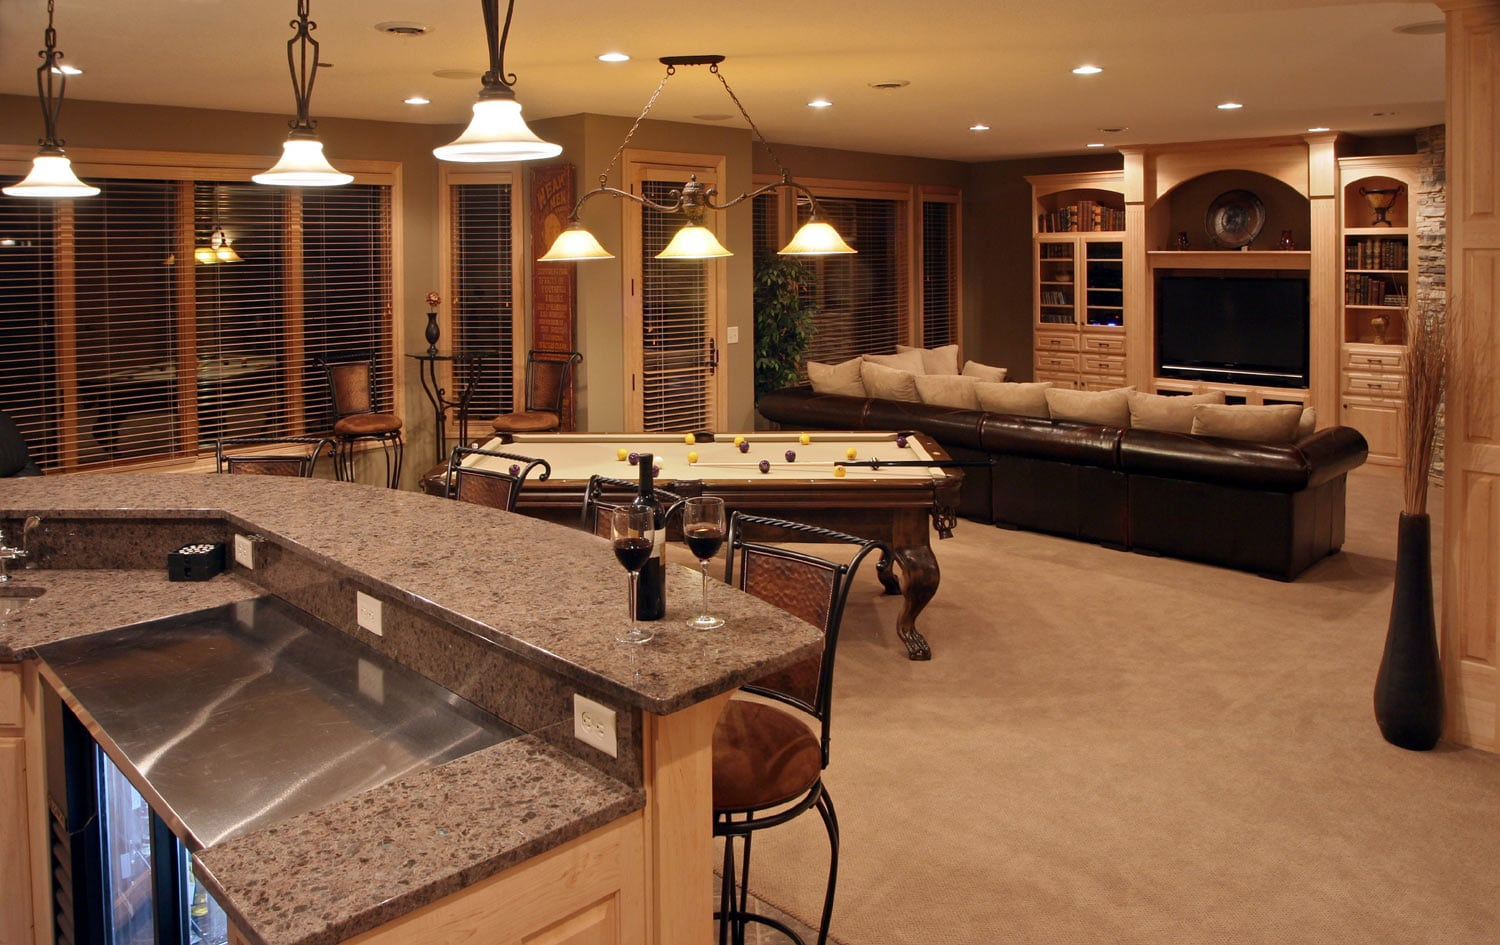 Basement Remodeling Ideas Spc Remodeling Contractors Bathroom Kitchen Basement Remodeling